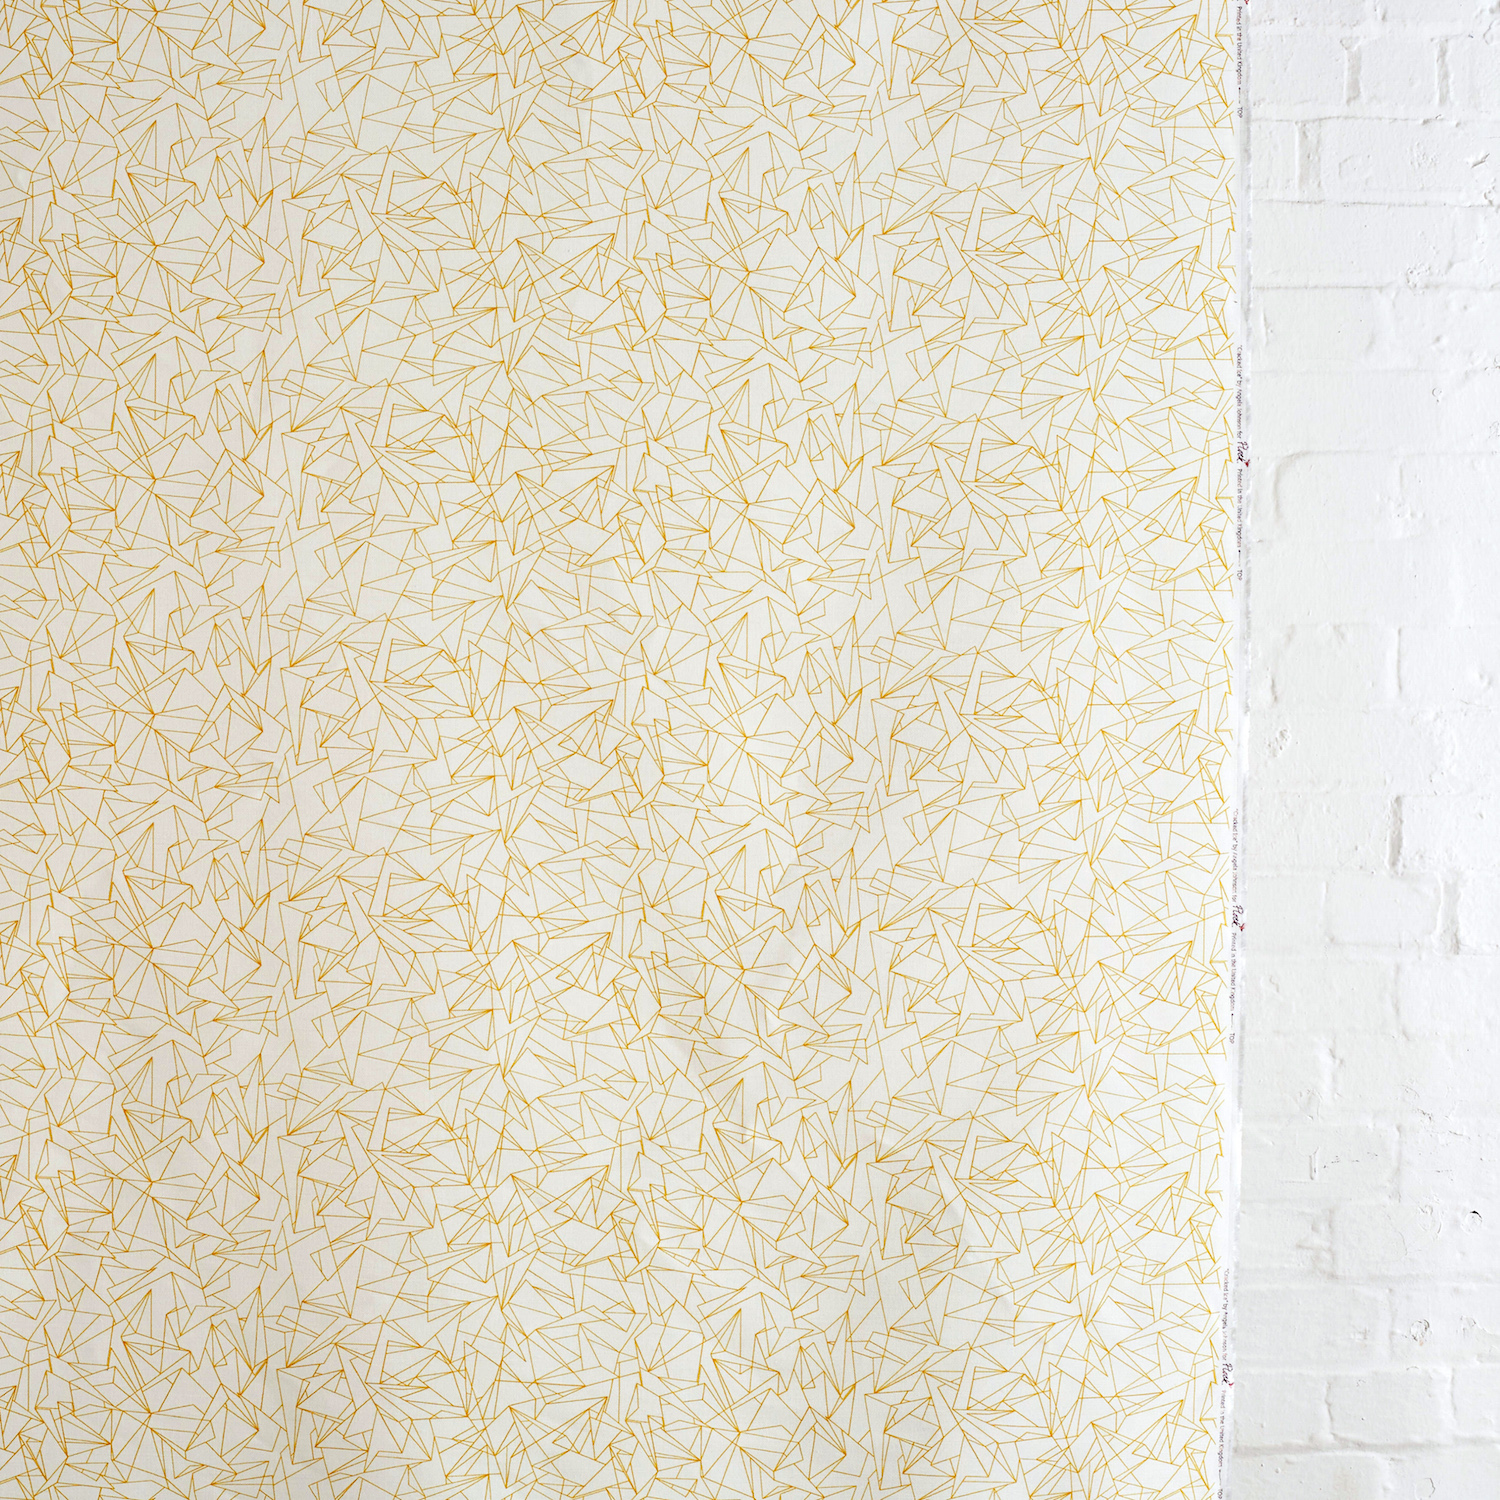 Cracked Ice Minor Mustard fabric